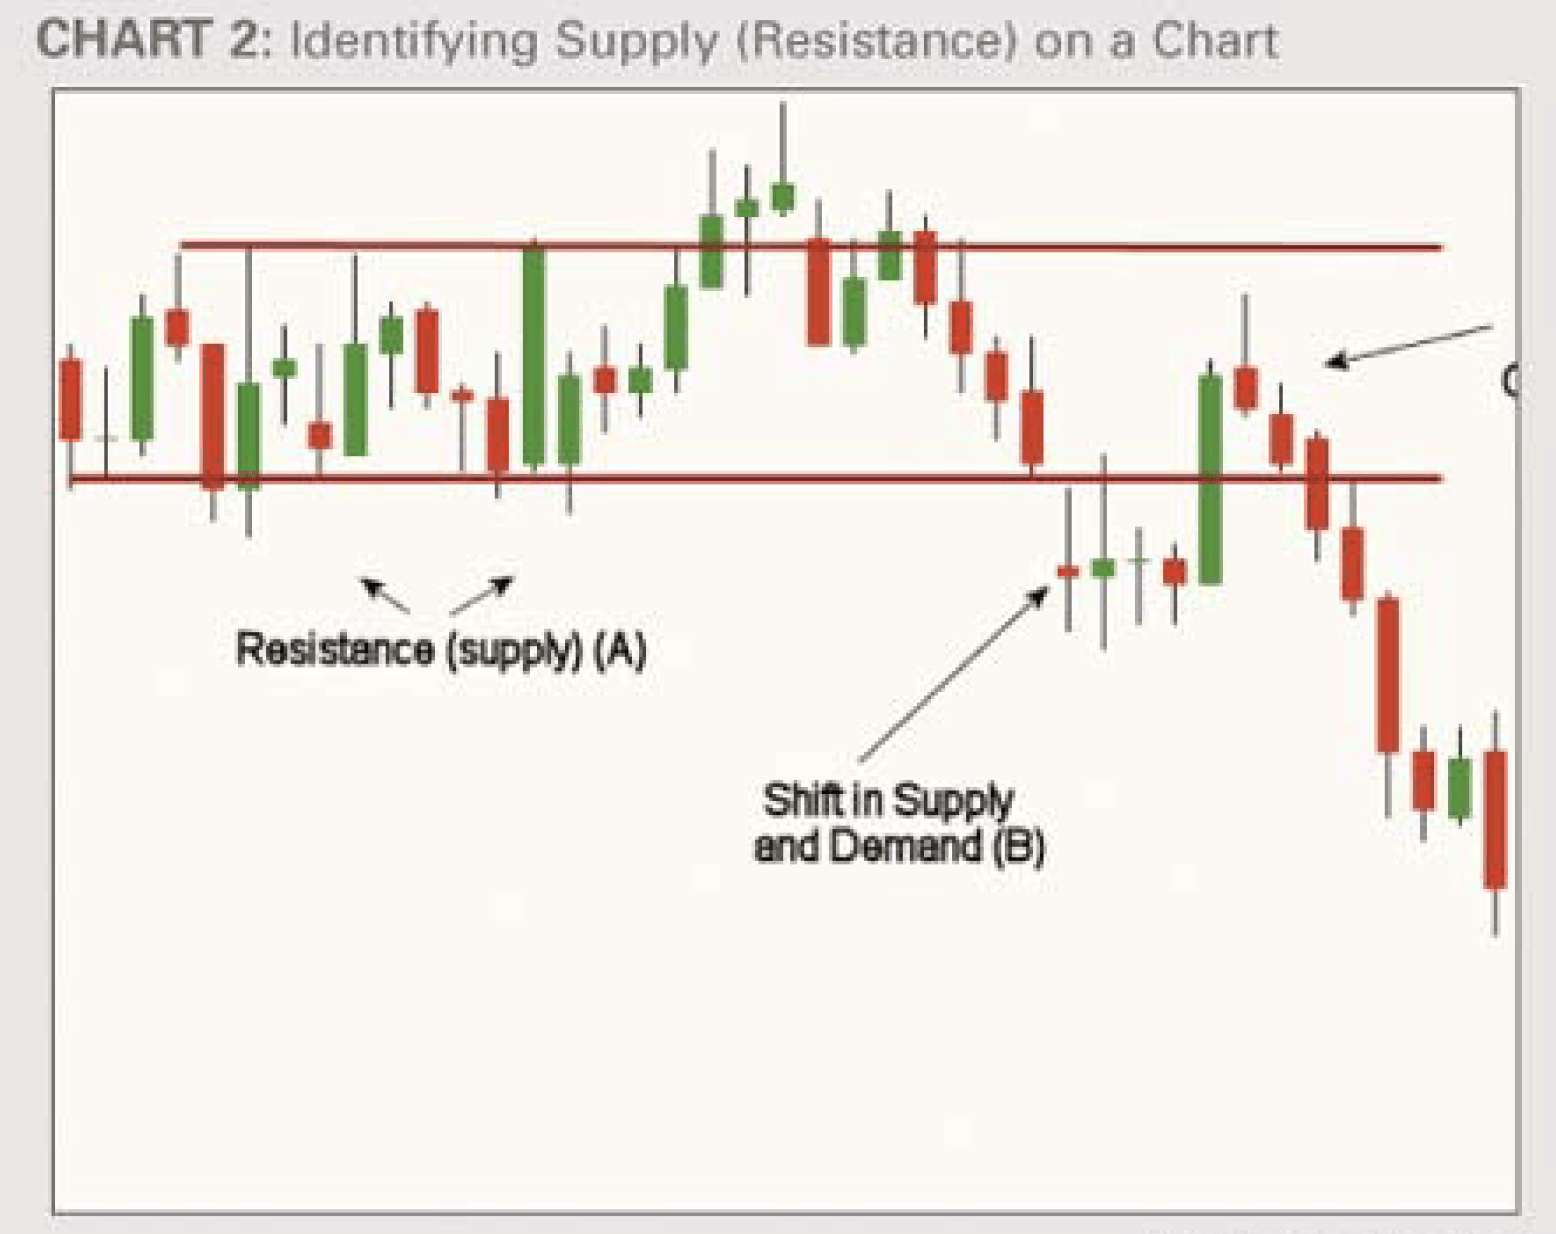 Supply Identification (Resistance)